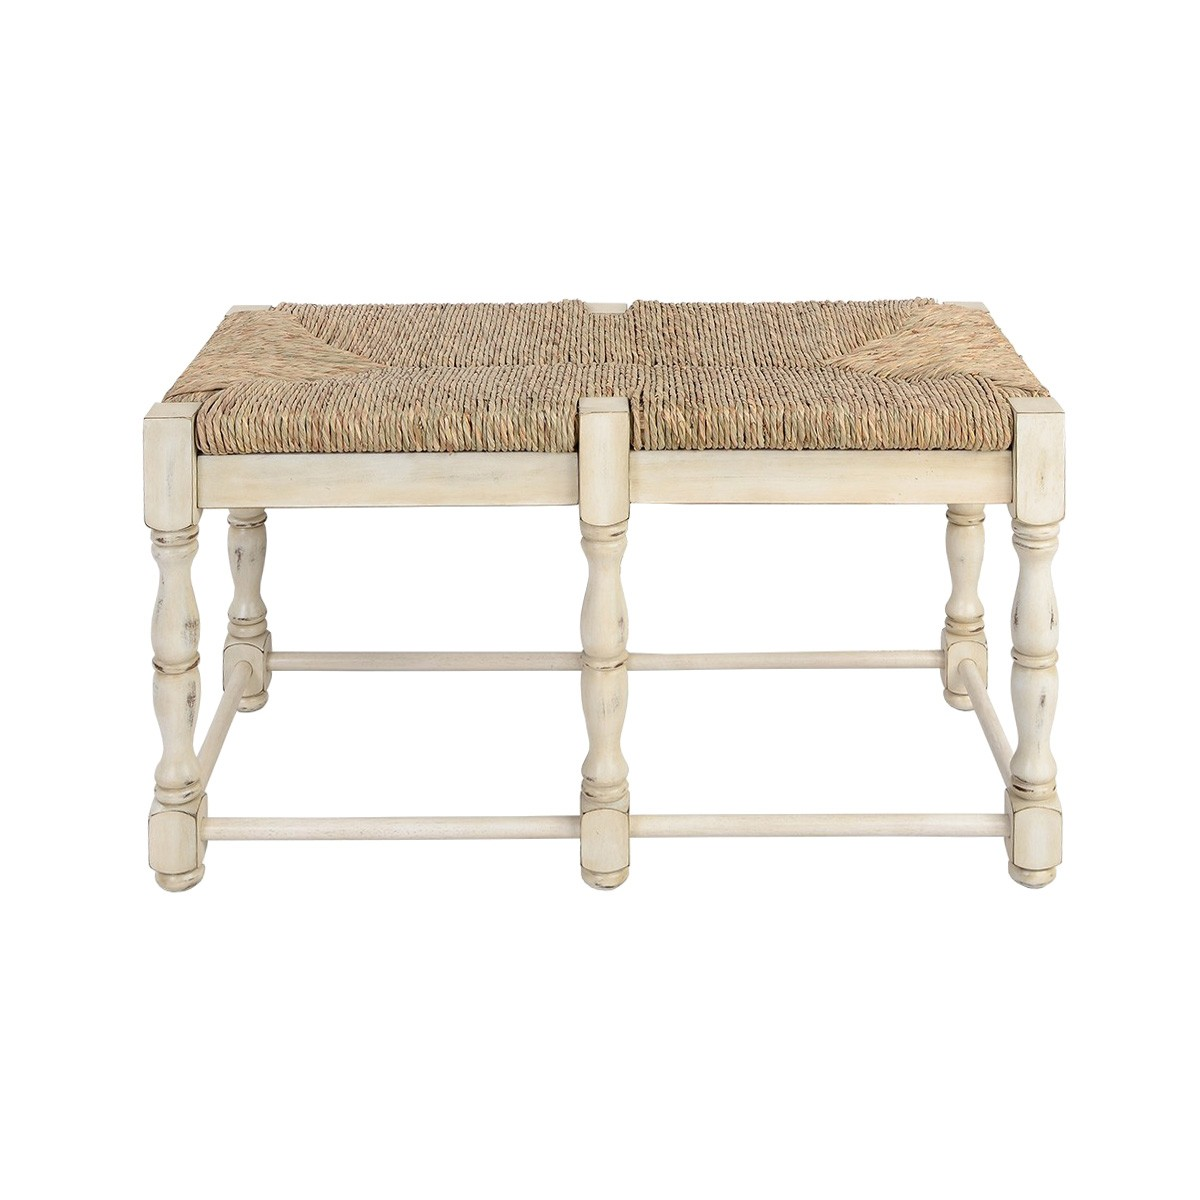 Plemont Acacia Timber Dressing Bench with Seagrass Seat, Distressed Cream